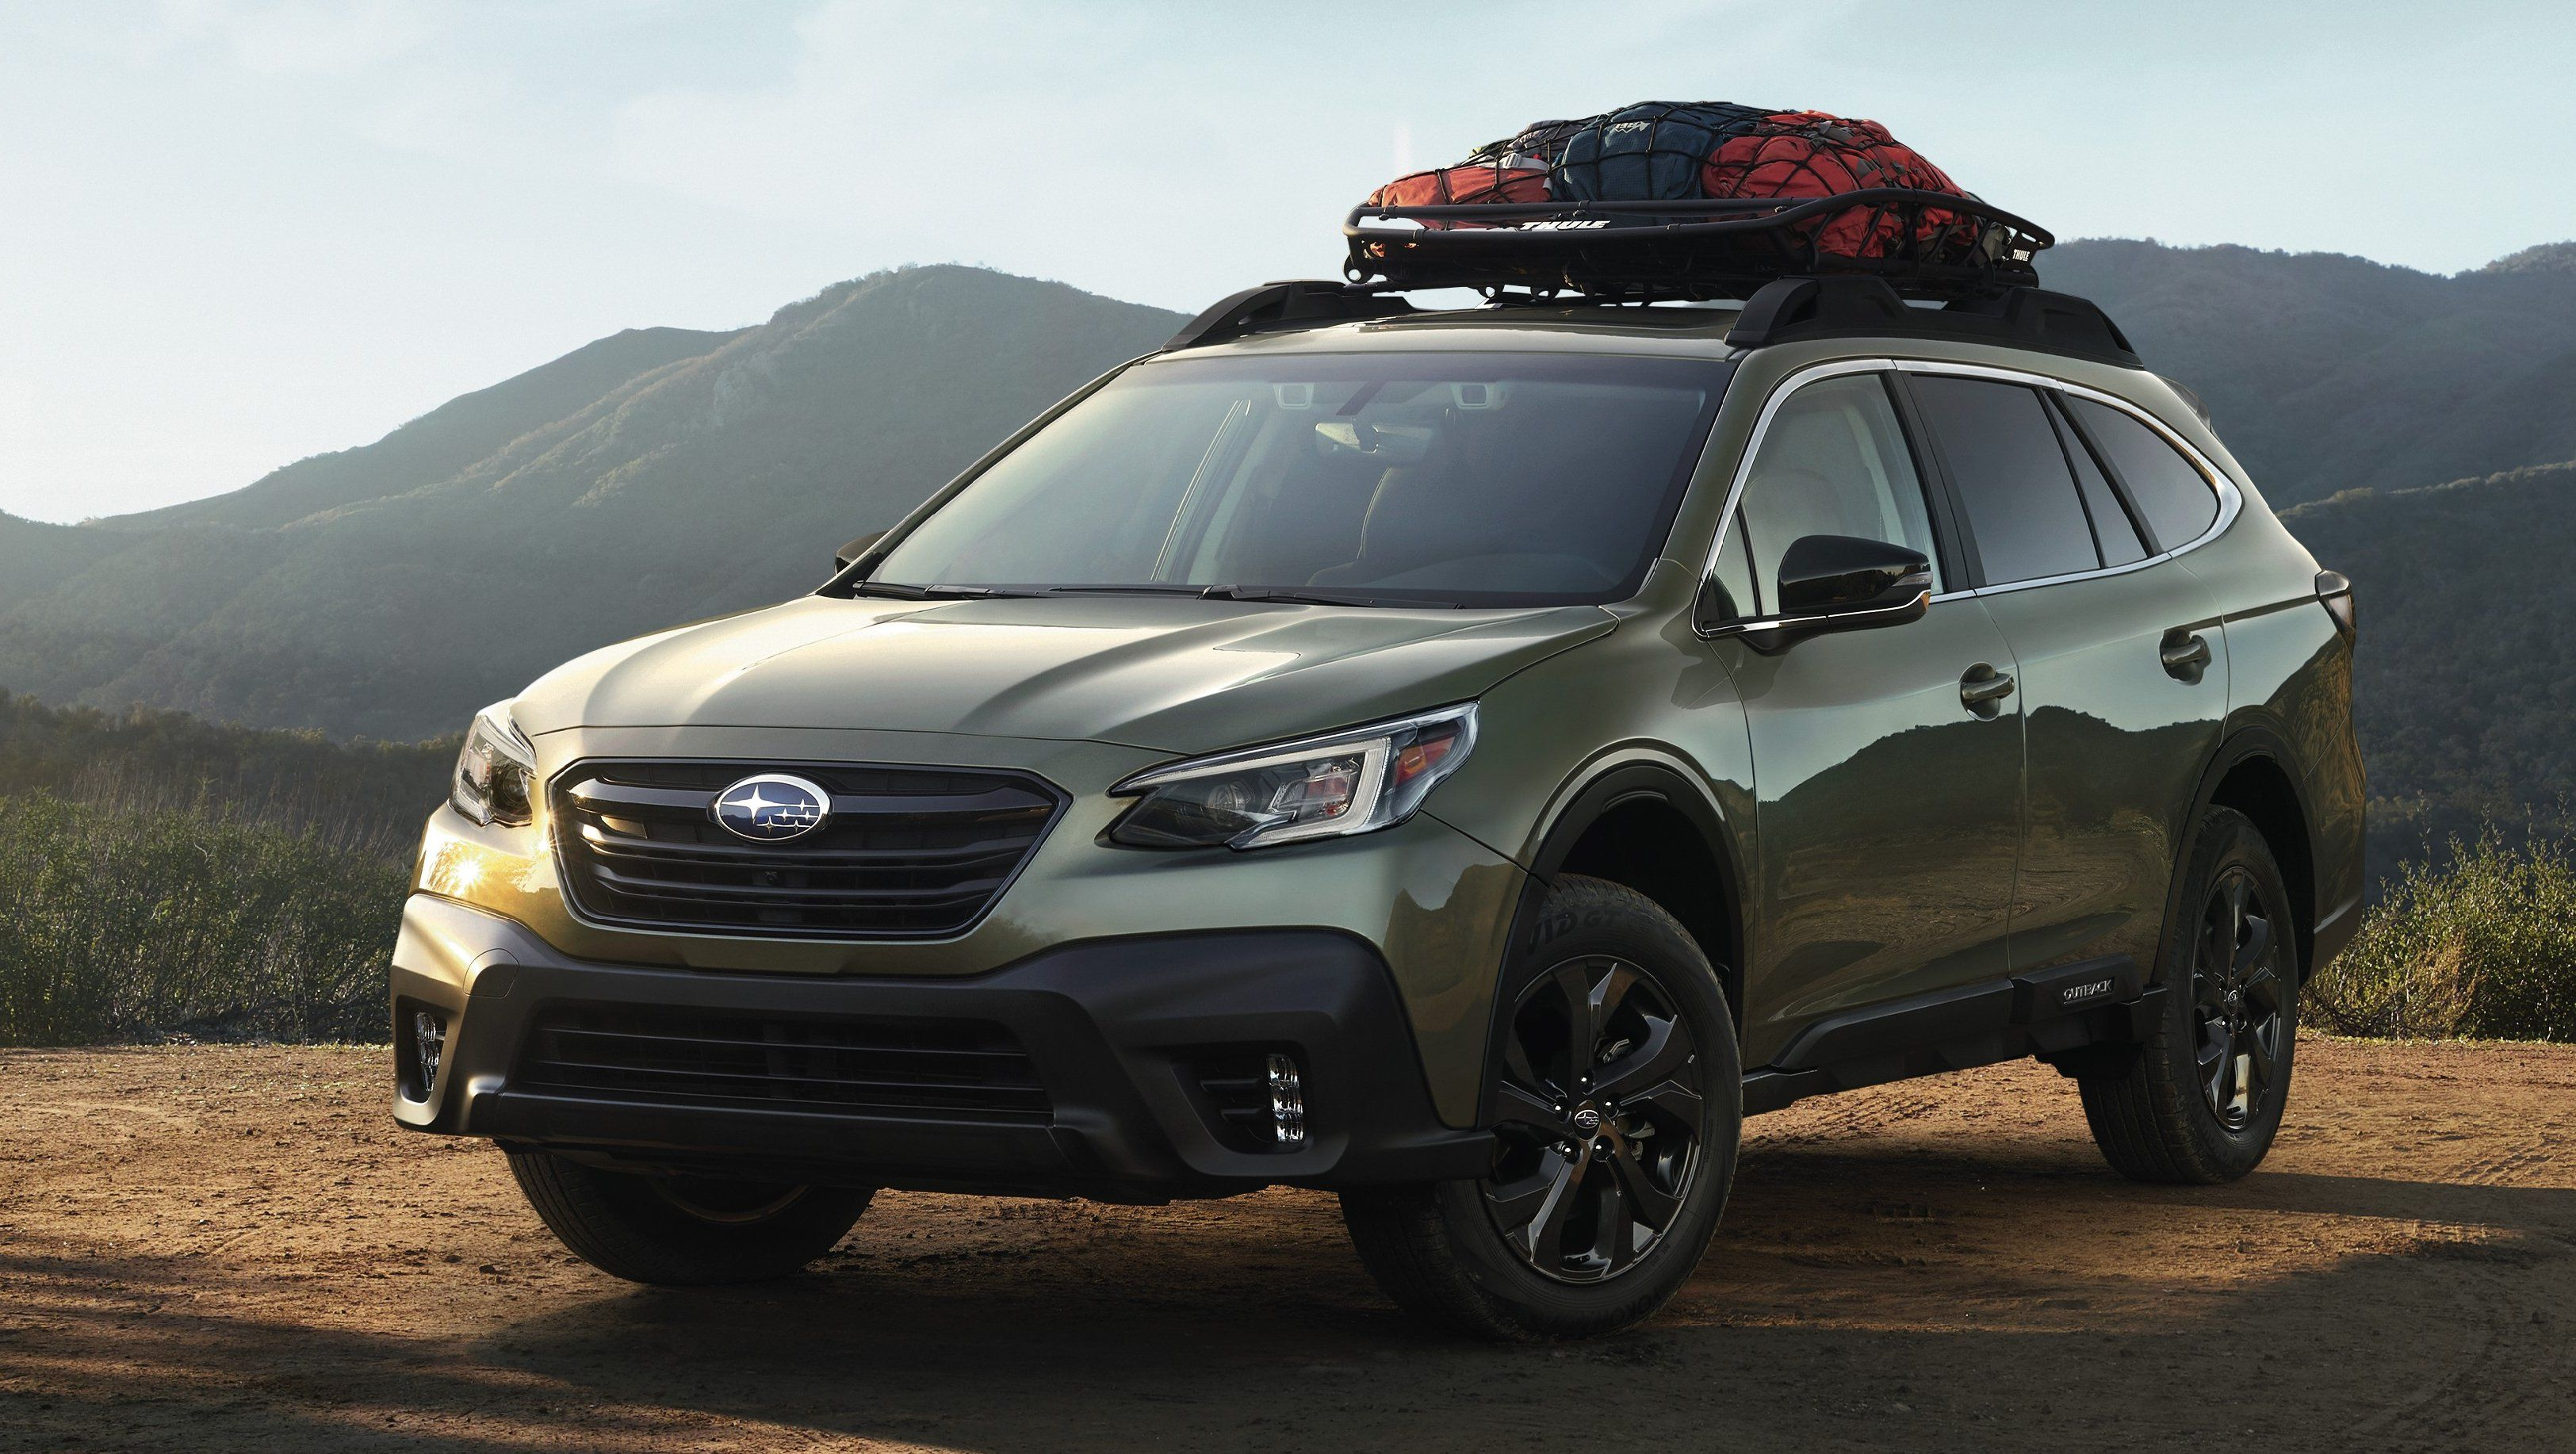 2020 subaru outback turbo hybrid with images  subaru